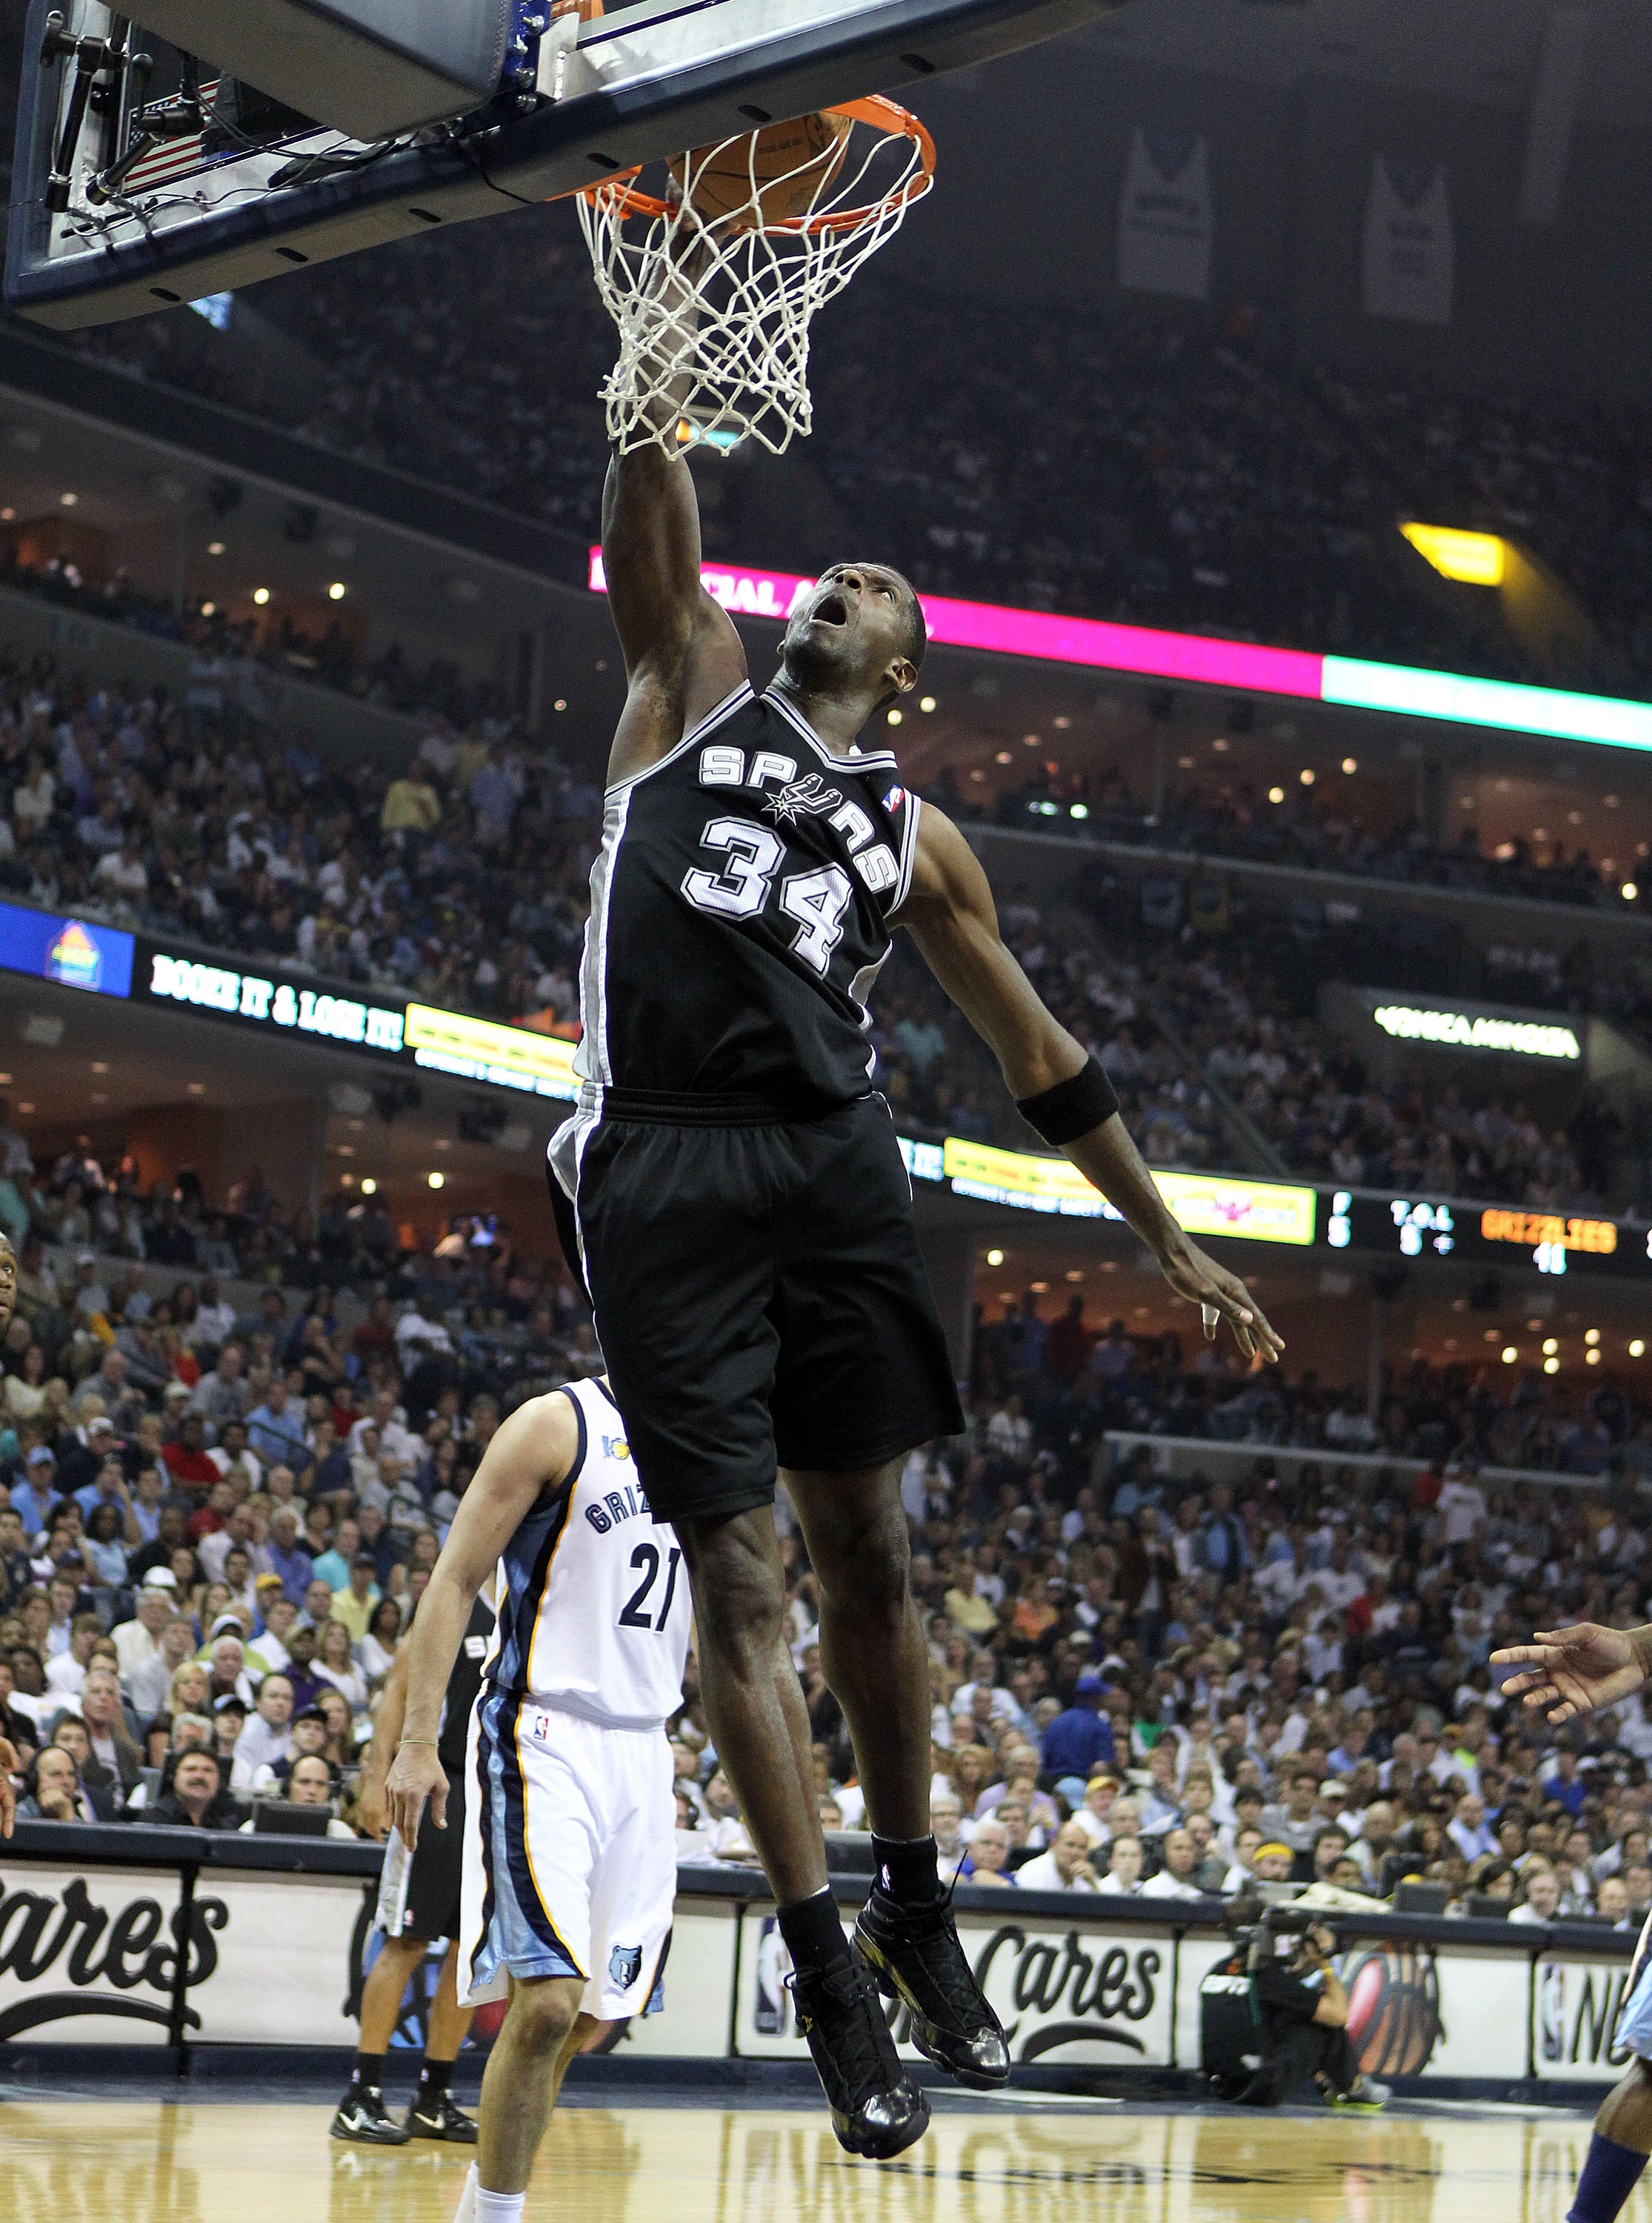 MEMPHIS, TN - APRIL 29:  Antonio McDyess #34 of the San Antonio Spurs shoots the ball against the Memphis Grizzlies in Game Six of the Western Conference Quarterfinals in the 2011 NBA Playoffs at FedExForum on April 29, 2011 in Memphis, Tennessee. NOTE TO